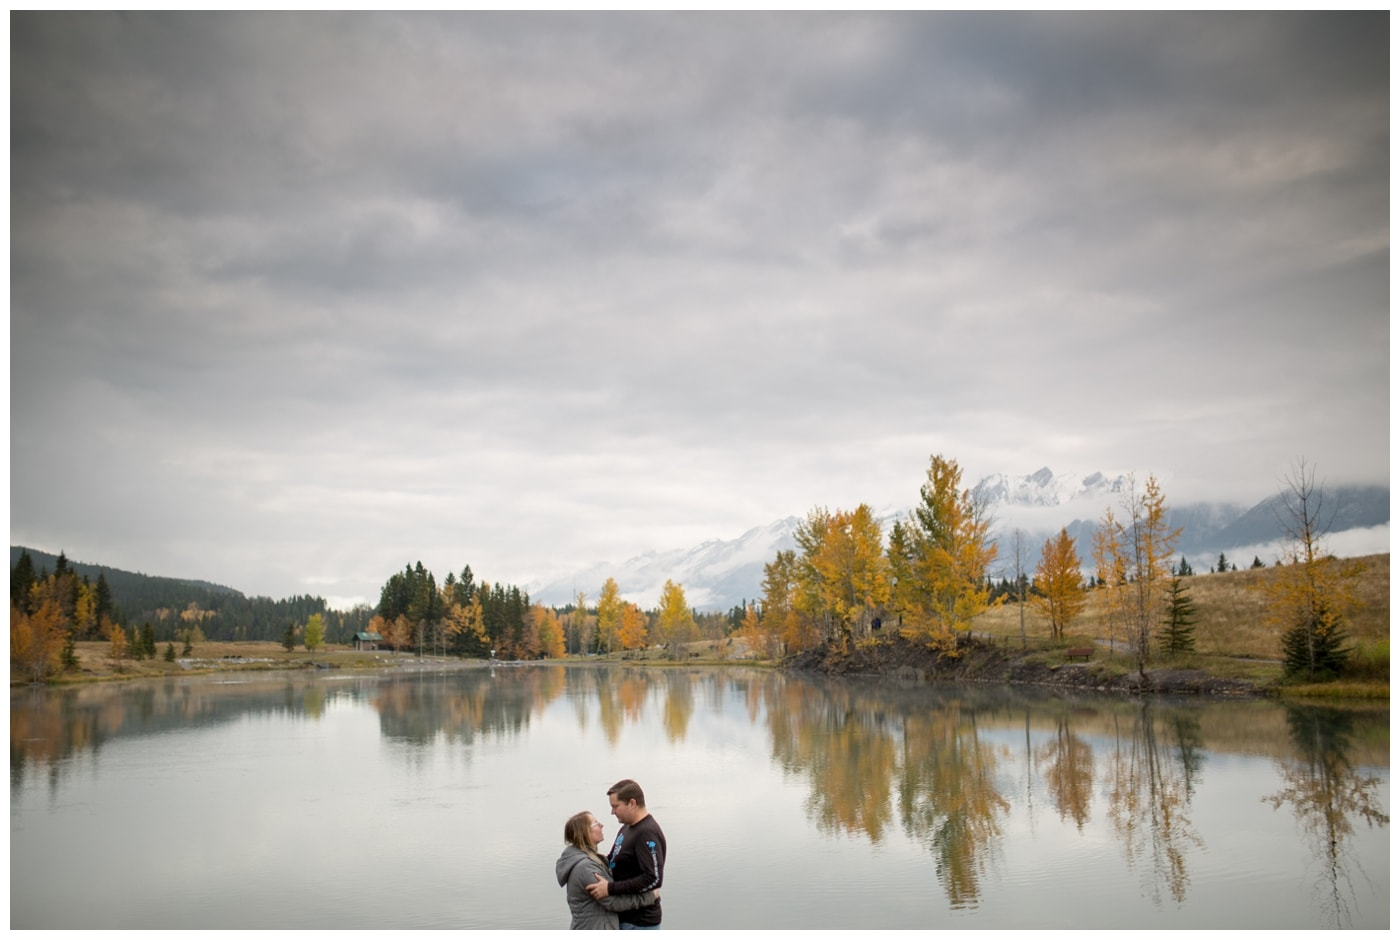 An engagement picture with the couple framed in a lake with mountains in the background, fall trees with bright yellow leaves, and a dramatic sky